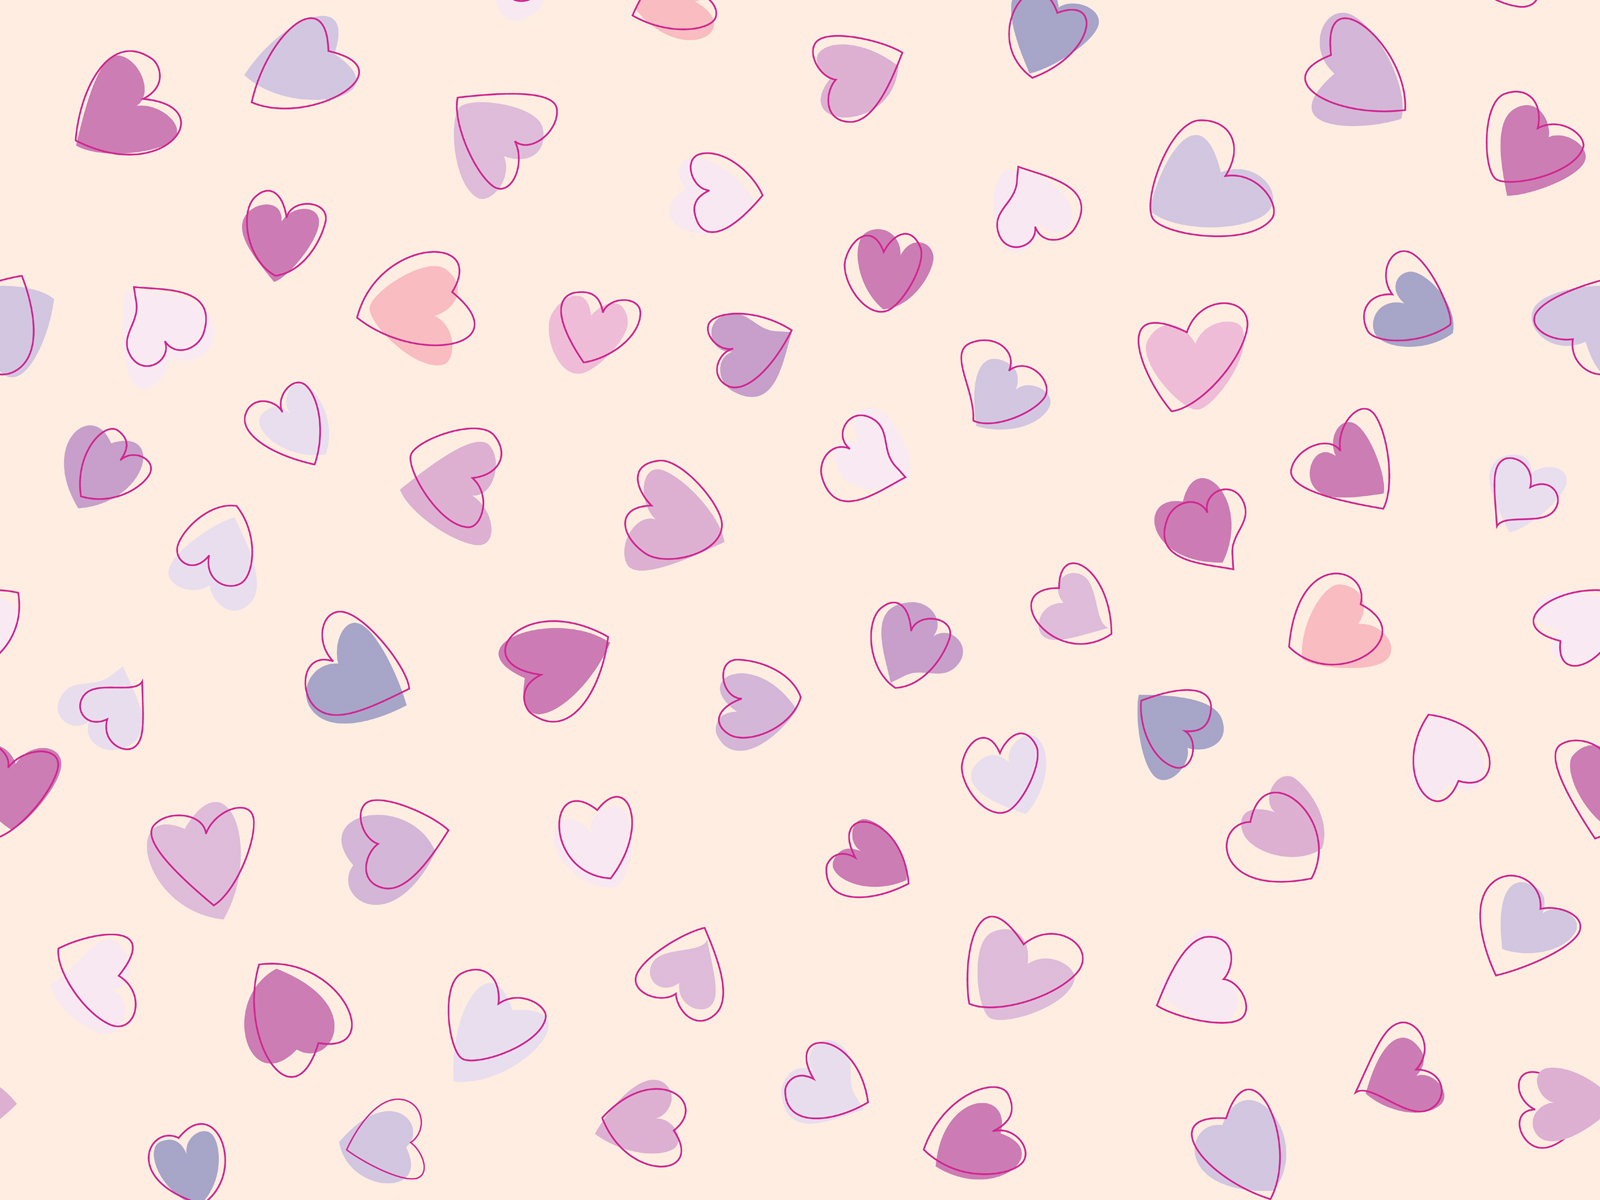 Love cute Heart Wallpaper : cute Heart Pattern wallpaper 1600x1200 #27954